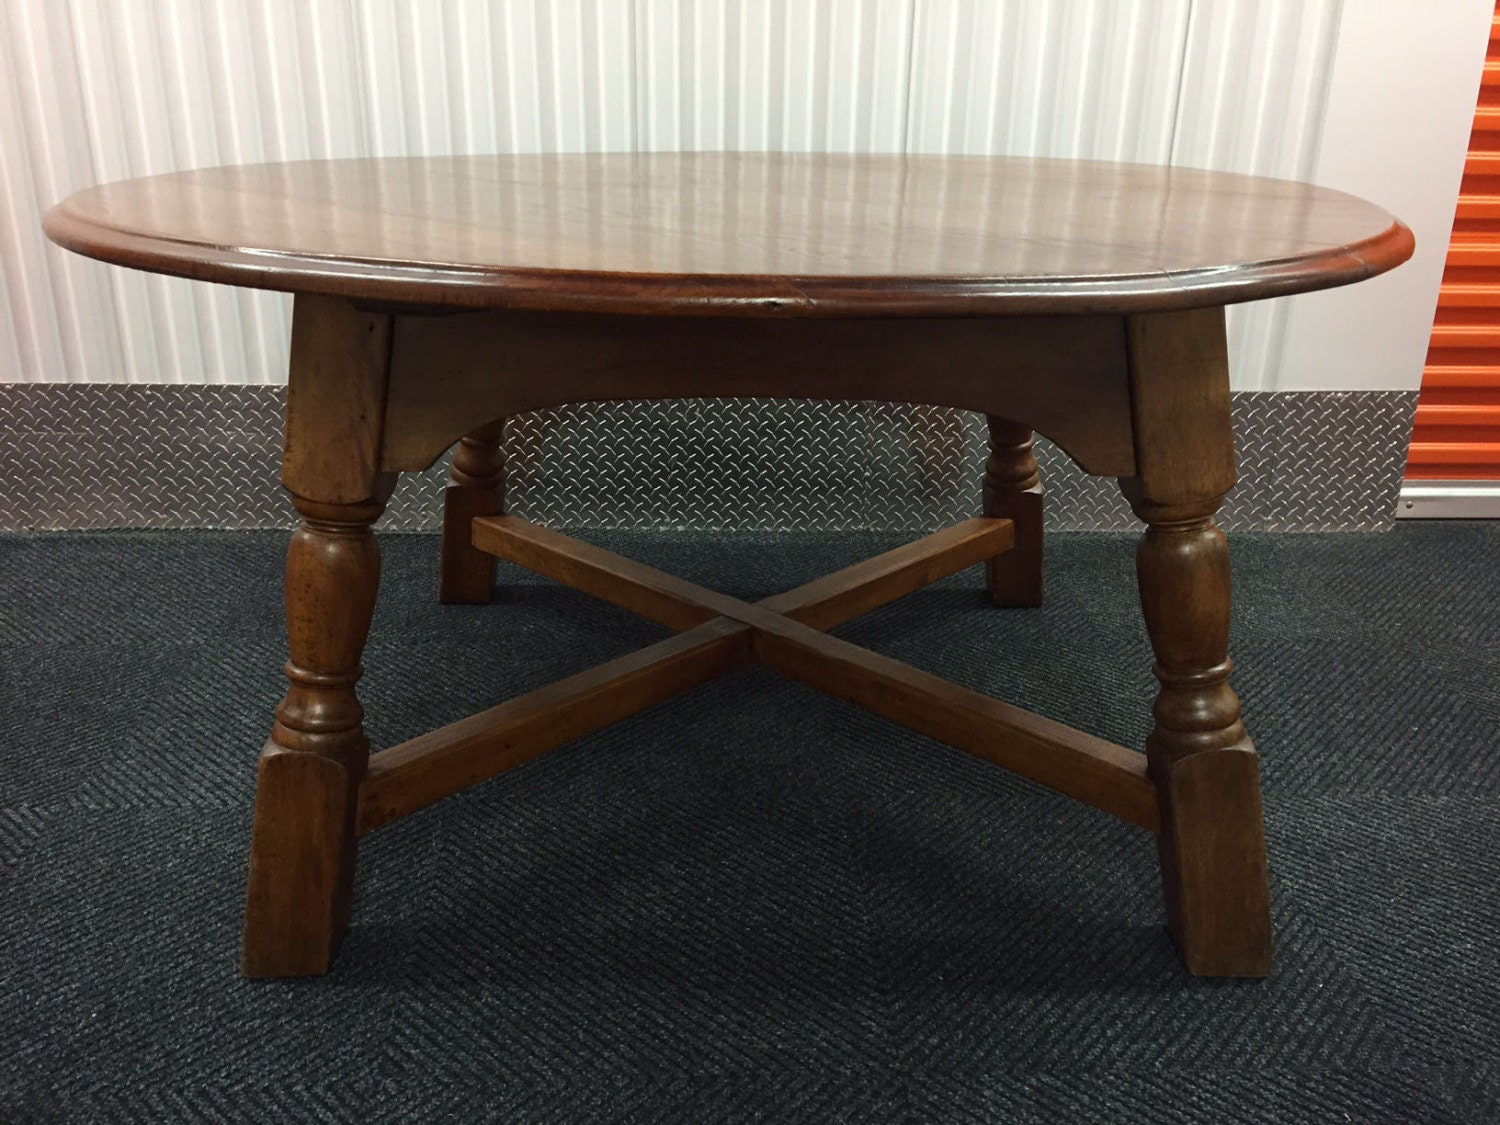 59 antique style solid oak round country dining table